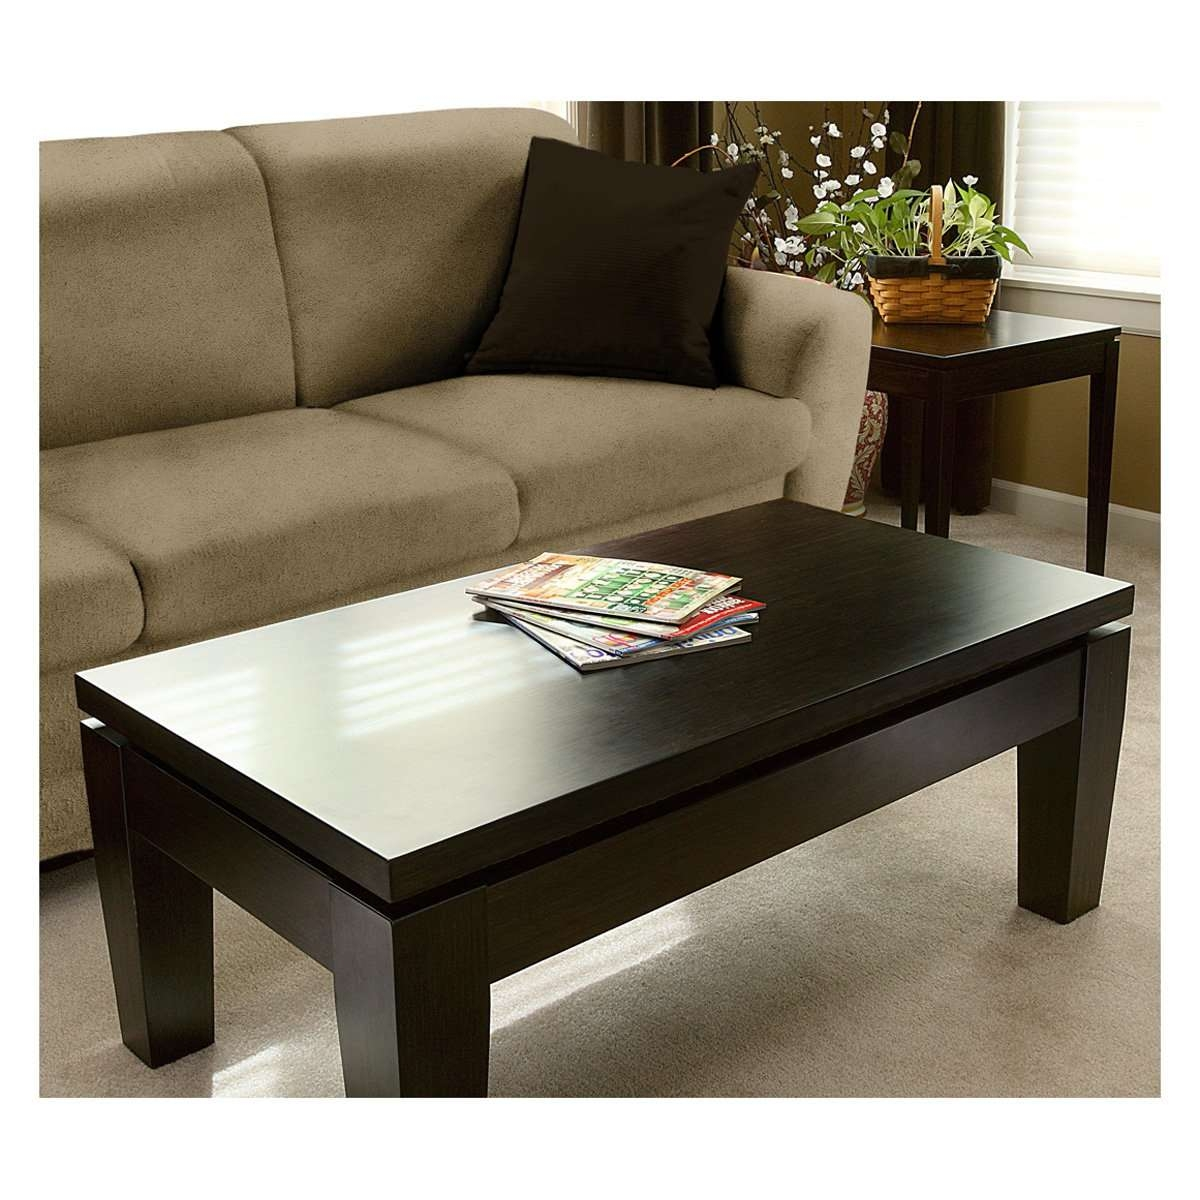 2018 Dark Brown Coffee Tables Intended For Dark Brown Wooden Modern Coffee Table Fit In The Classic Living (View 1 of 20)